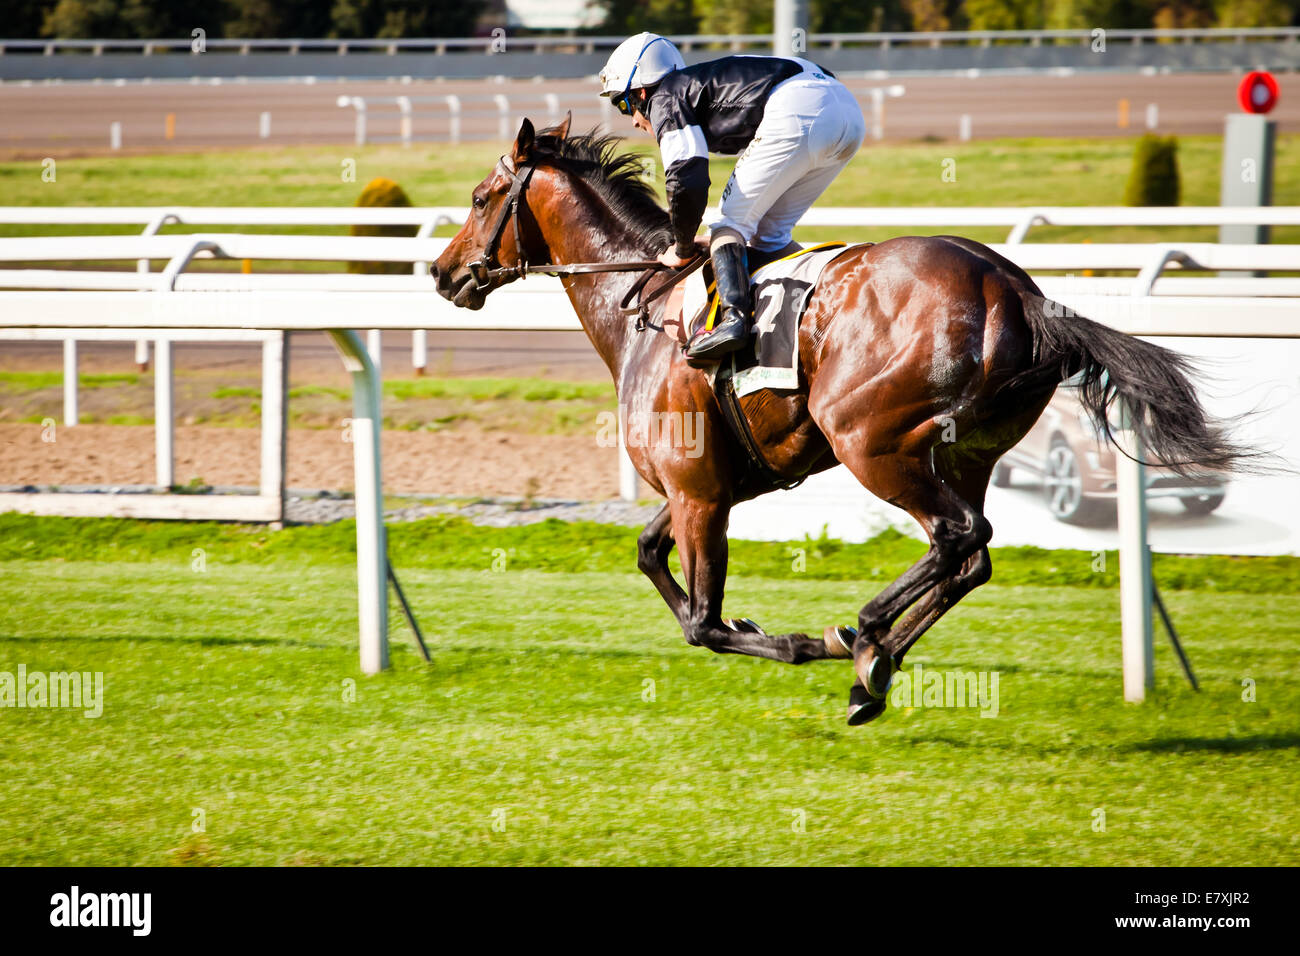 Rome, Italy, 01 May, 2014: Jockey rides horse during race one. Stock Photo